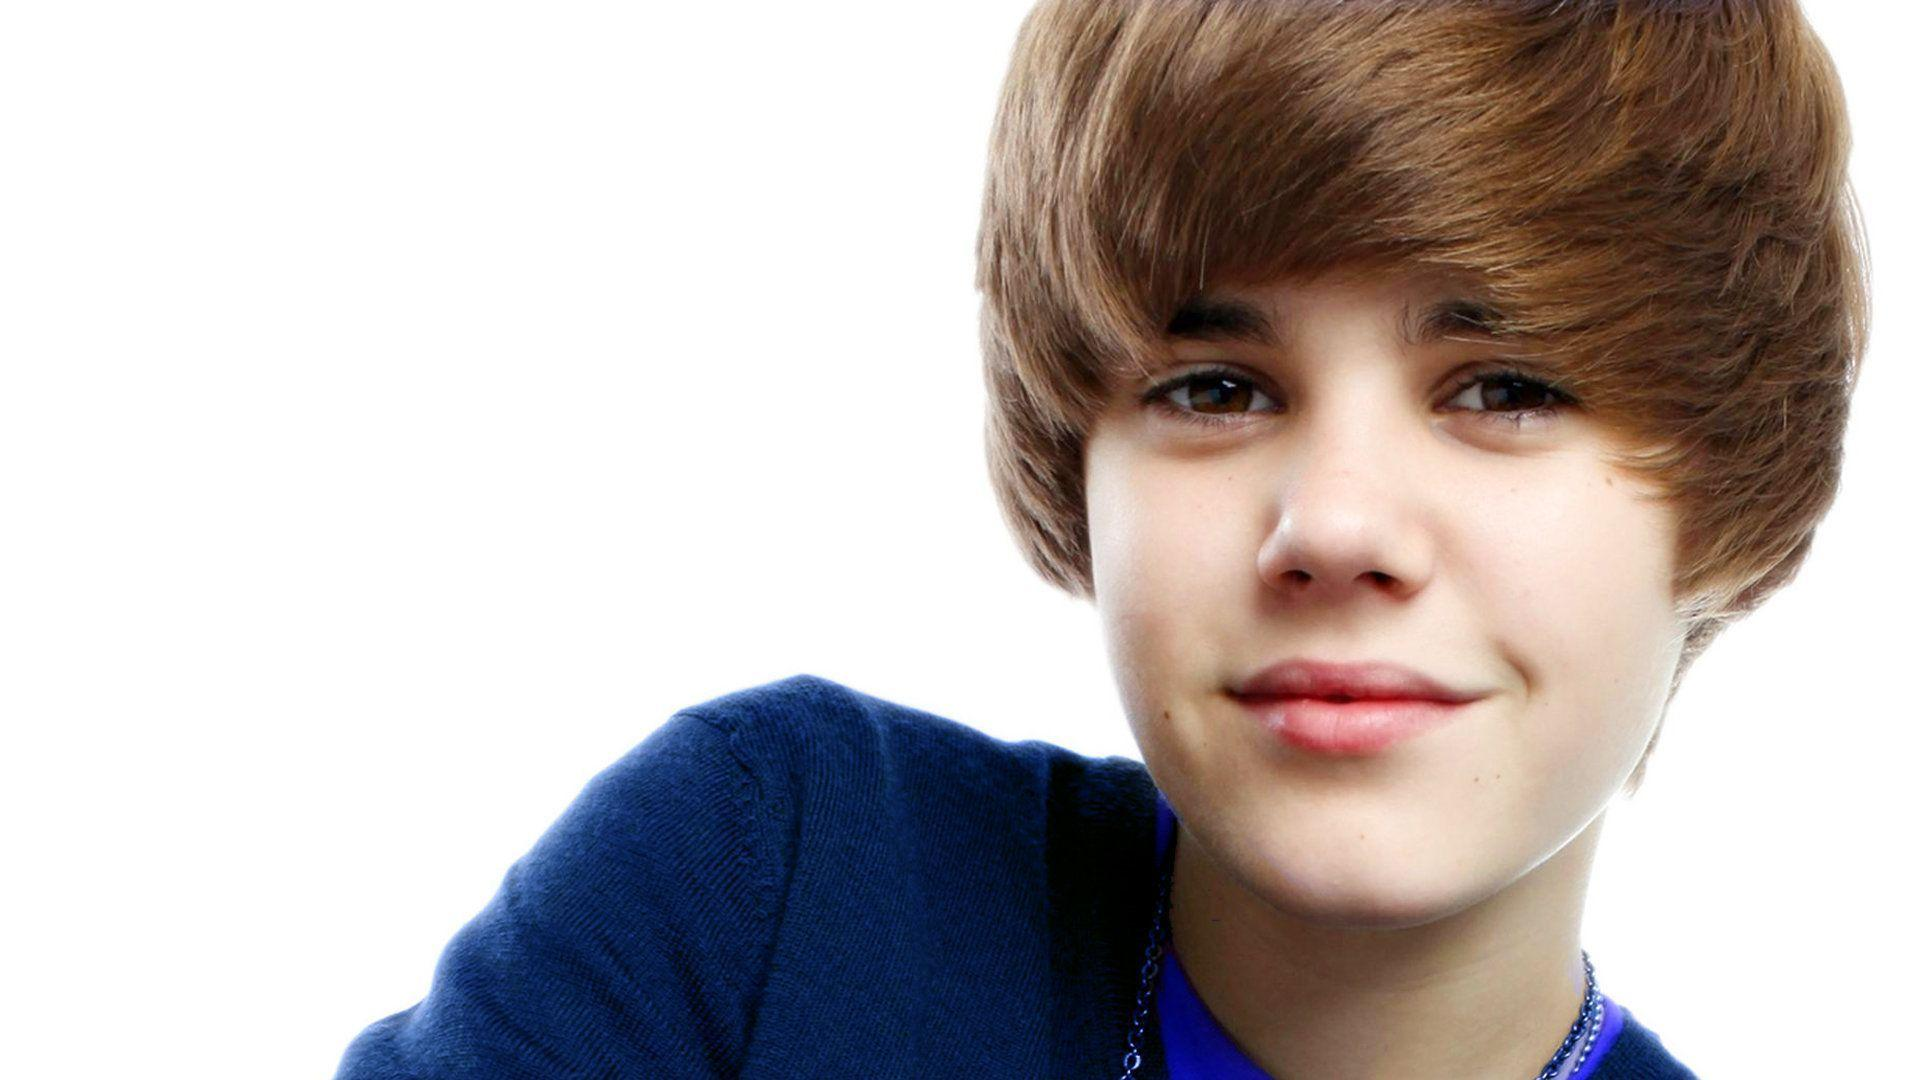 Justin Bieber Photos Hd 1080P 12 HD Wallpapers